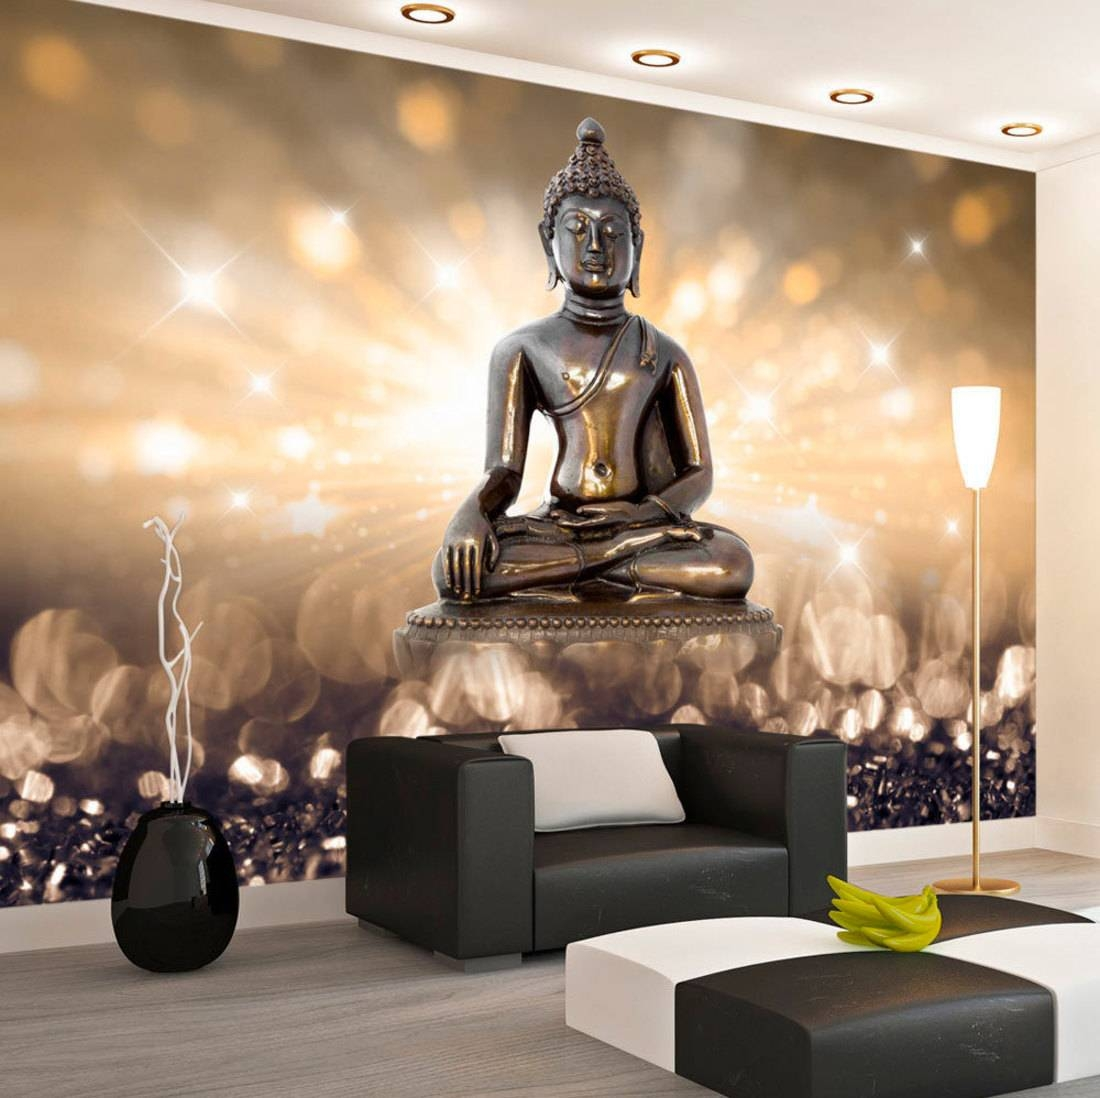 Photo Wallpaper Wall Murals Non Woven 3d Modern Art Buddha For Current 3d Buddha Wall Art (View 9 of 20)